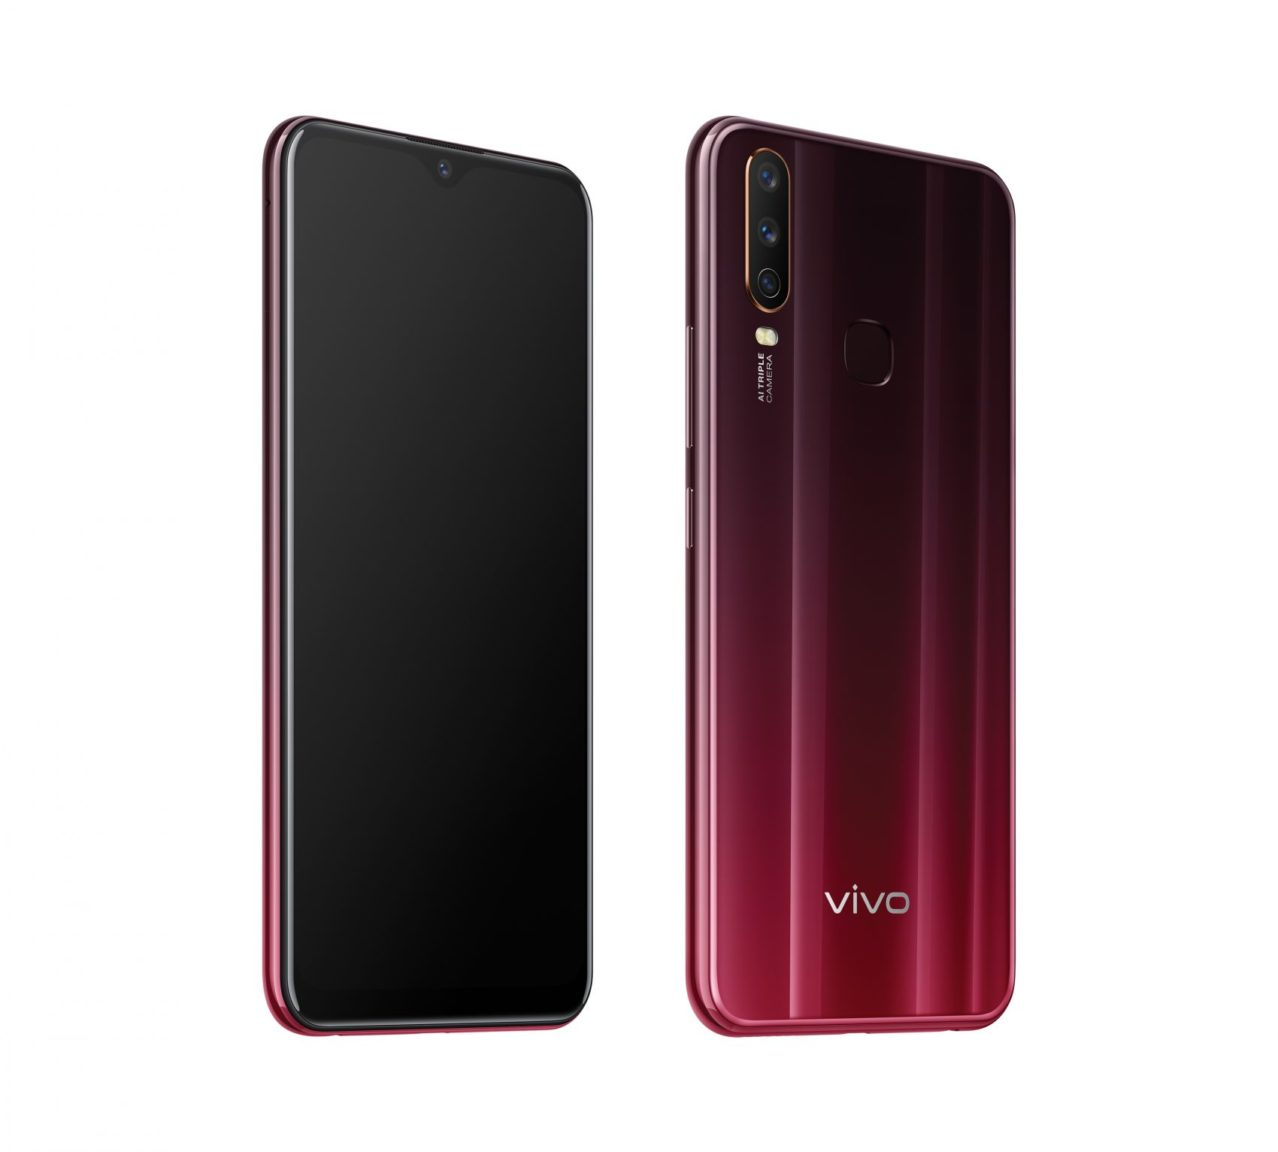 Vivo Launches the Y12 with Triple Rear Camera and 5,000 mAh Battery